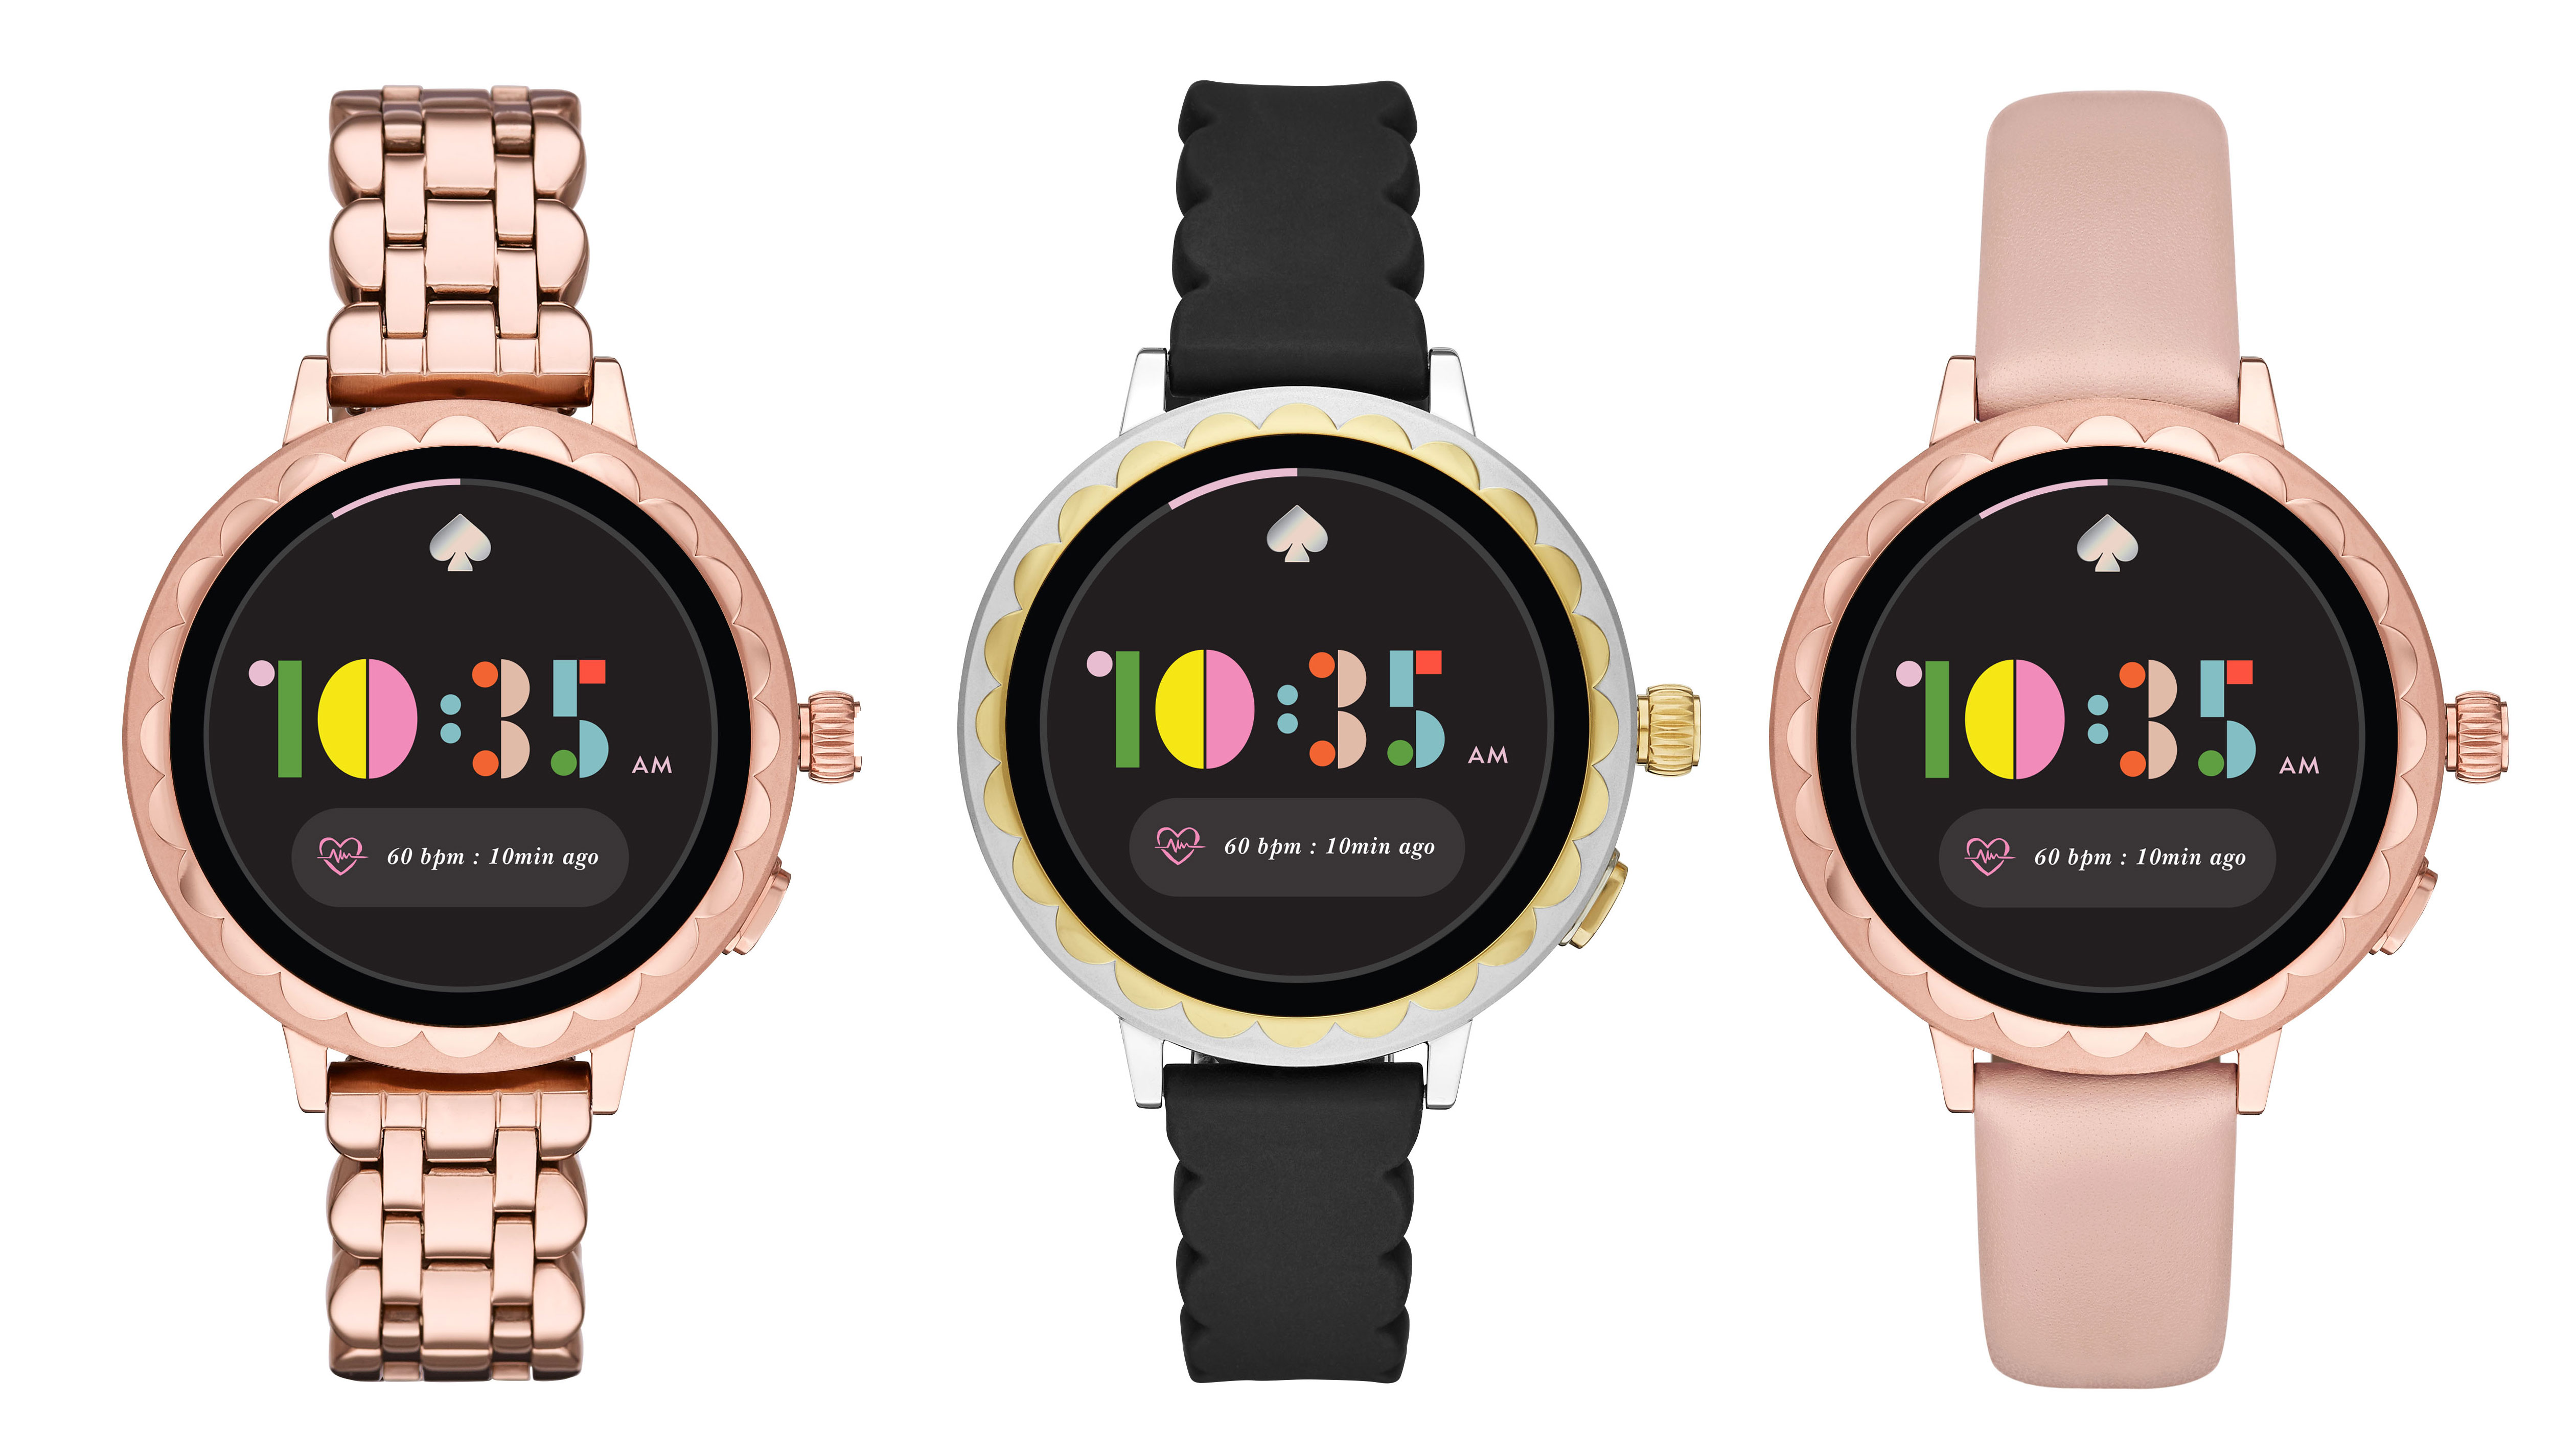 new concept 40b24 b97b1 Kate Spade Scallop 2 smartwatch has Google Pay, GPS and heart rate ...